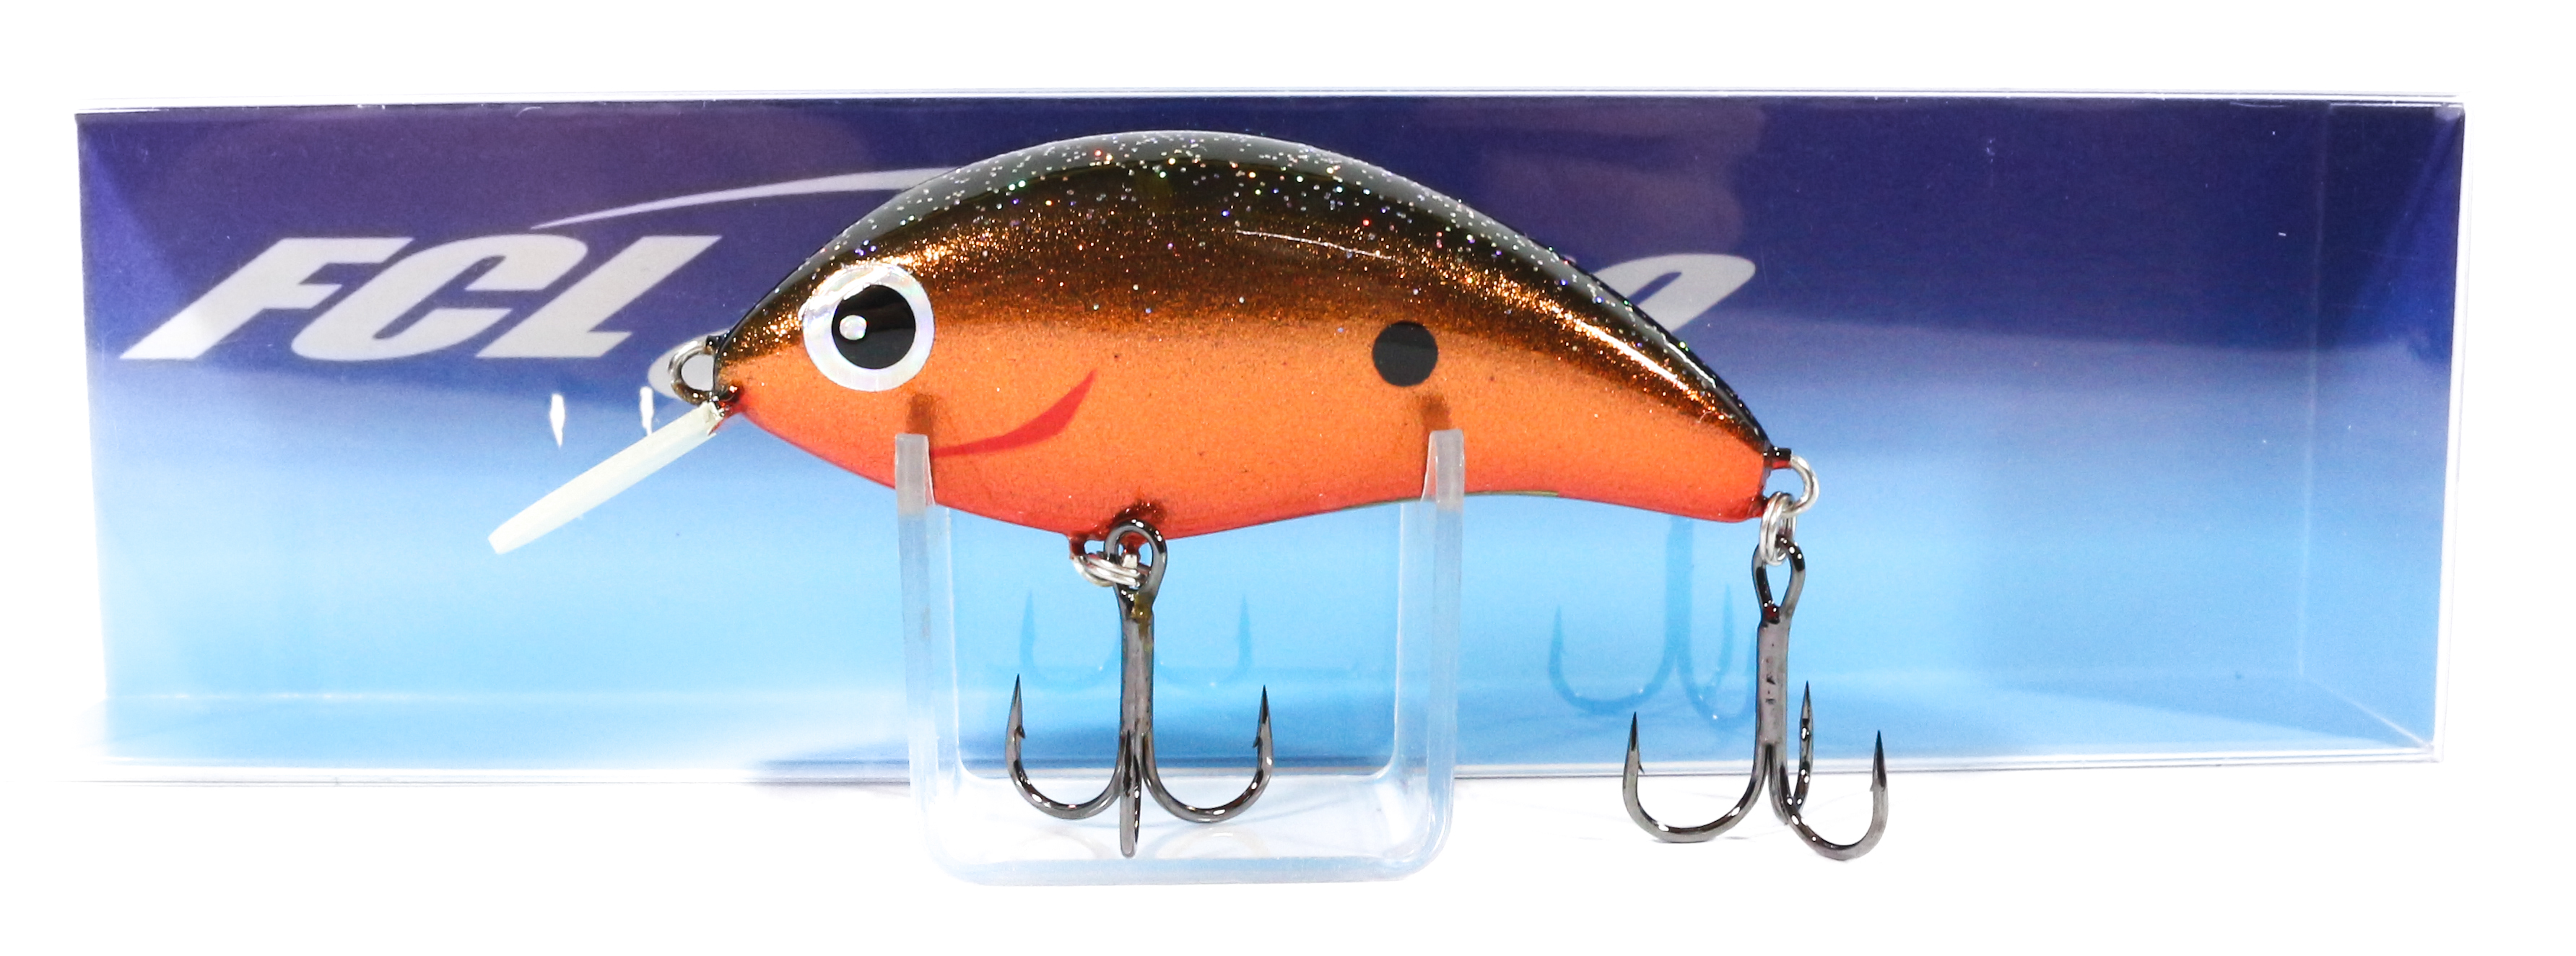 FCL Labo Lure Keshal 63 Floating Lure MCB (4471)